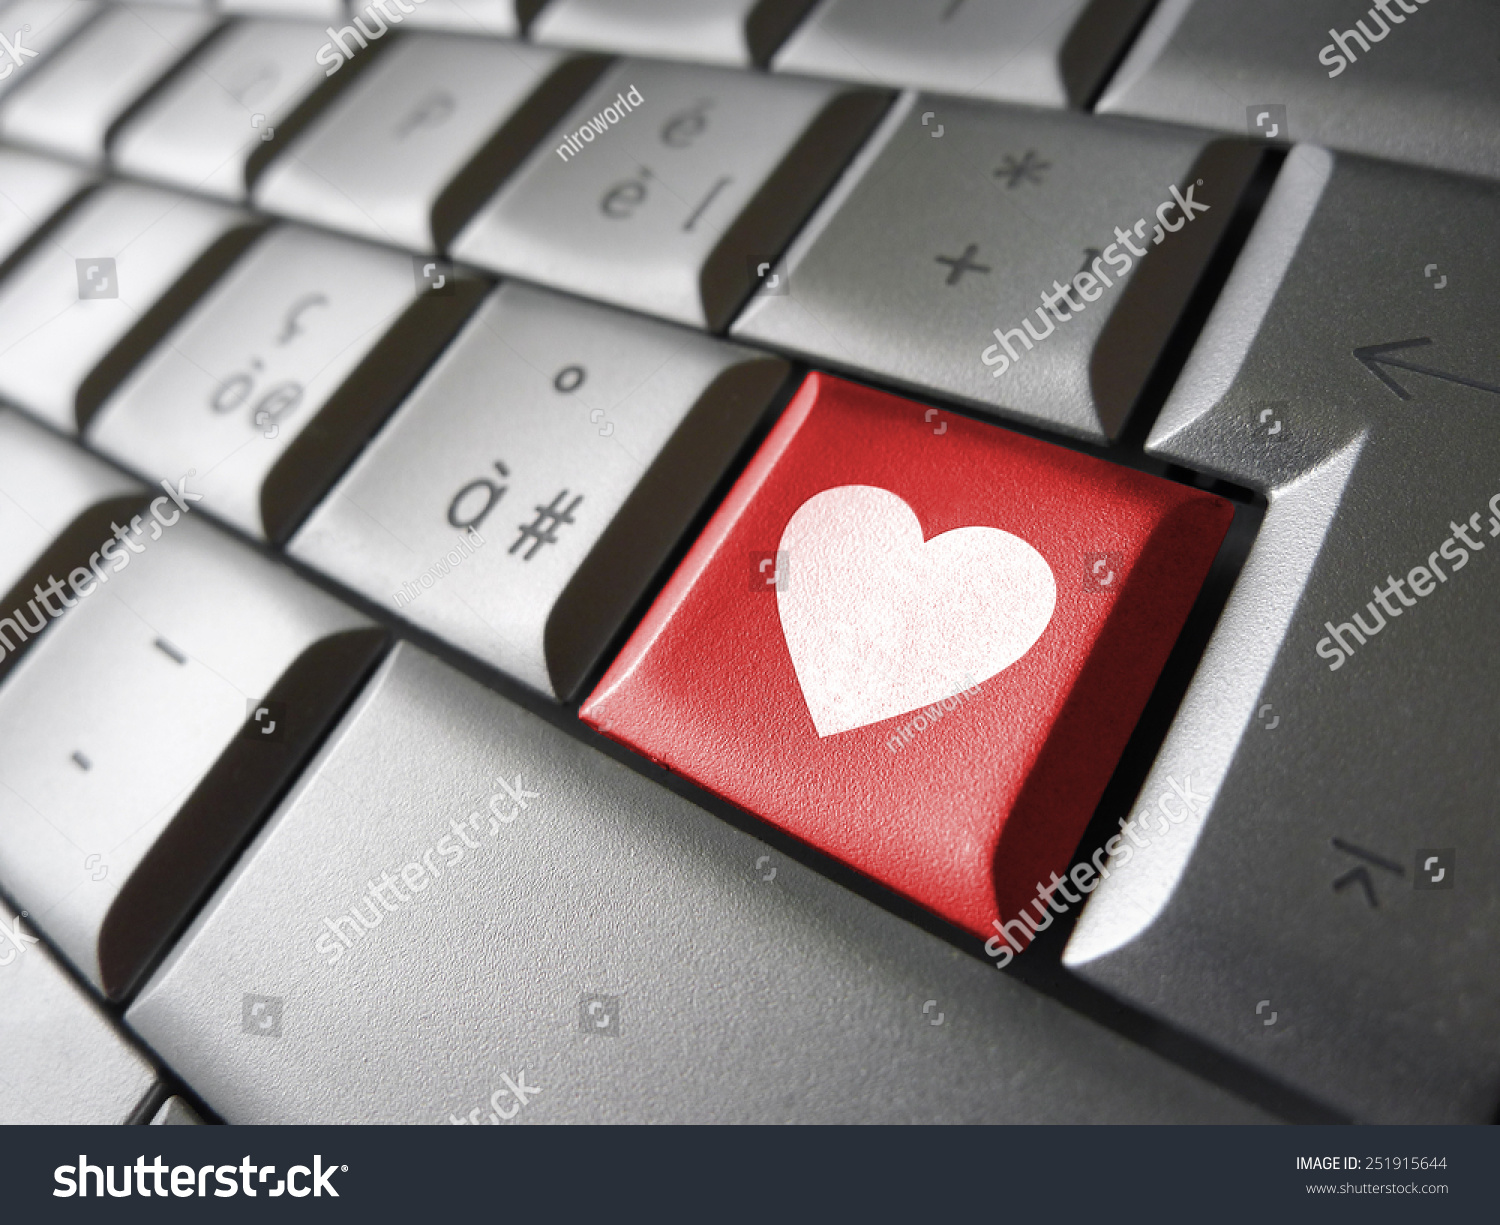 Online love valentines lovers concept heart stock photo 251915644 online love and valentines lovers concept with a heart icon and symbol on a red computer buycottarizona Choice Image